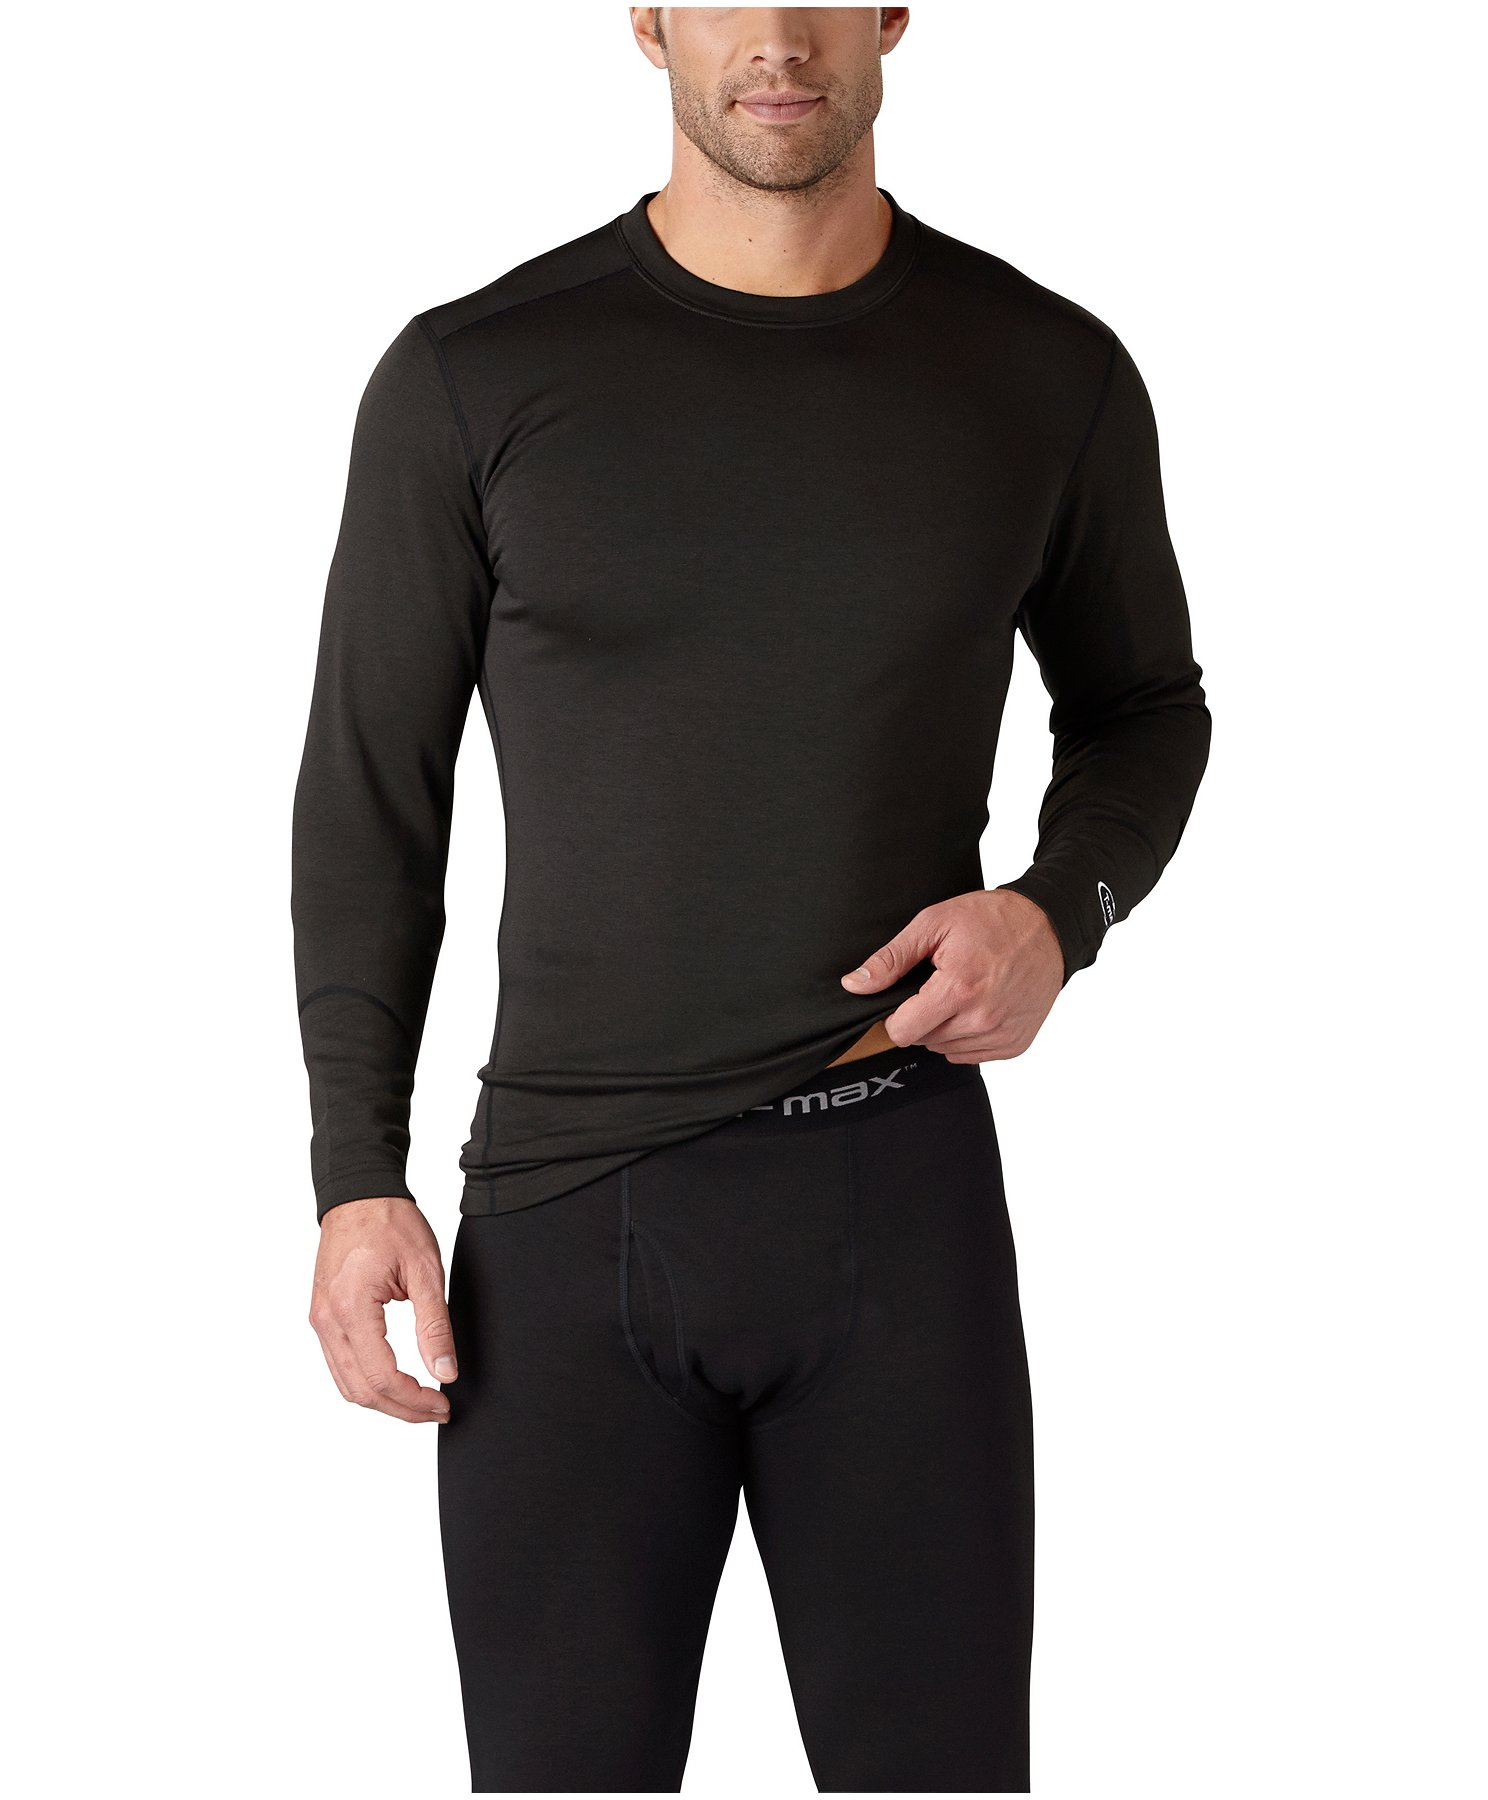 Men's T-MAX HEAT Fleece Crew Neck Top